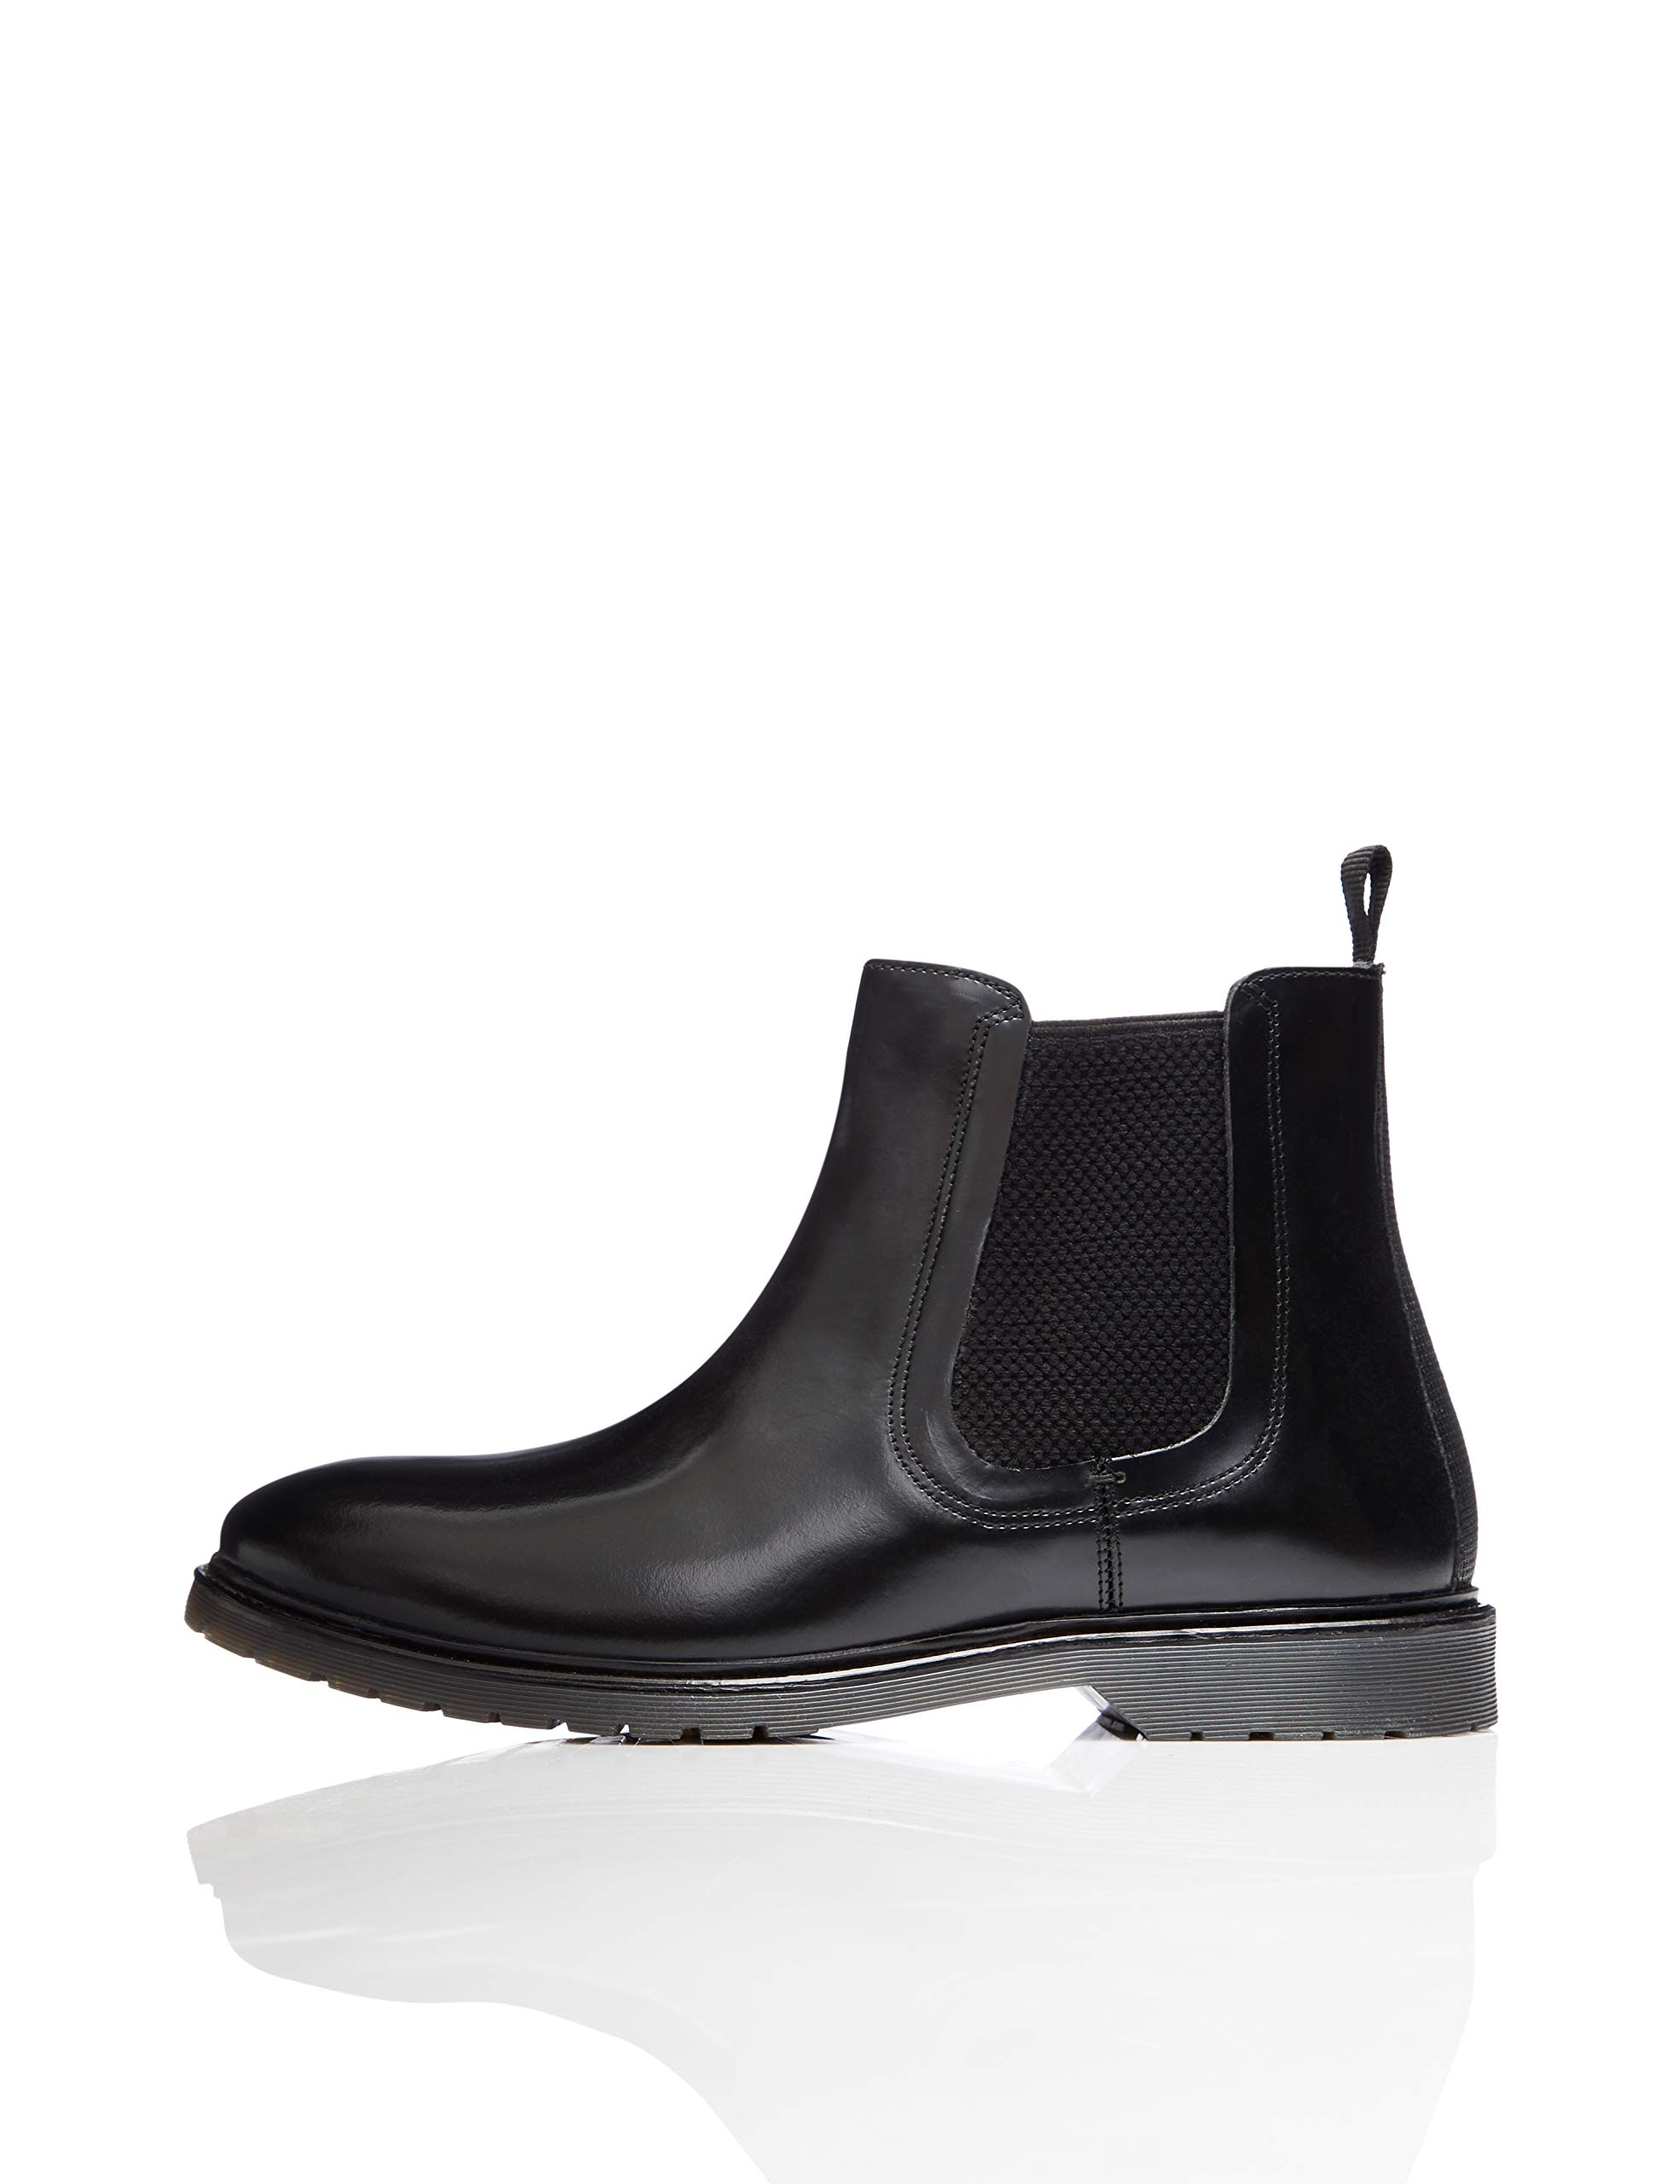 Black FindLeather Cleated Eu Bottes Polido45 ChelseaNoir UqpzVMS